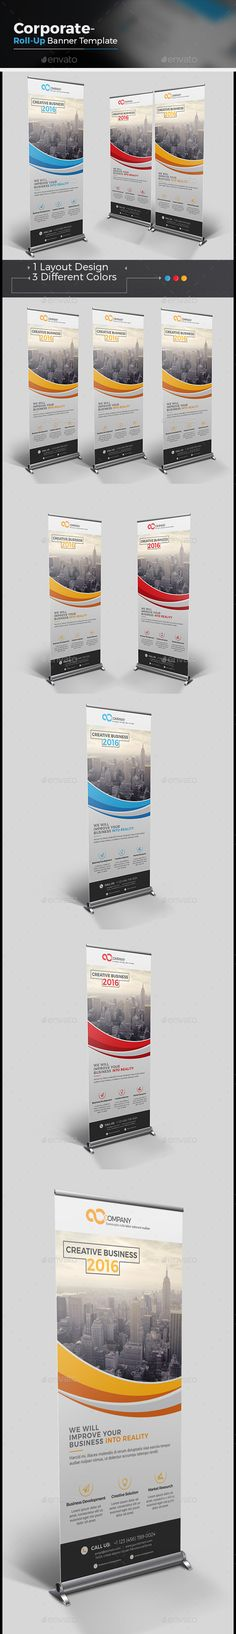 The Business Roll-up Banner Template Vector EPS, AI. Download here: http://graphicriver.net/item/the-business-rollup-banner/14603819?ref=ksioks